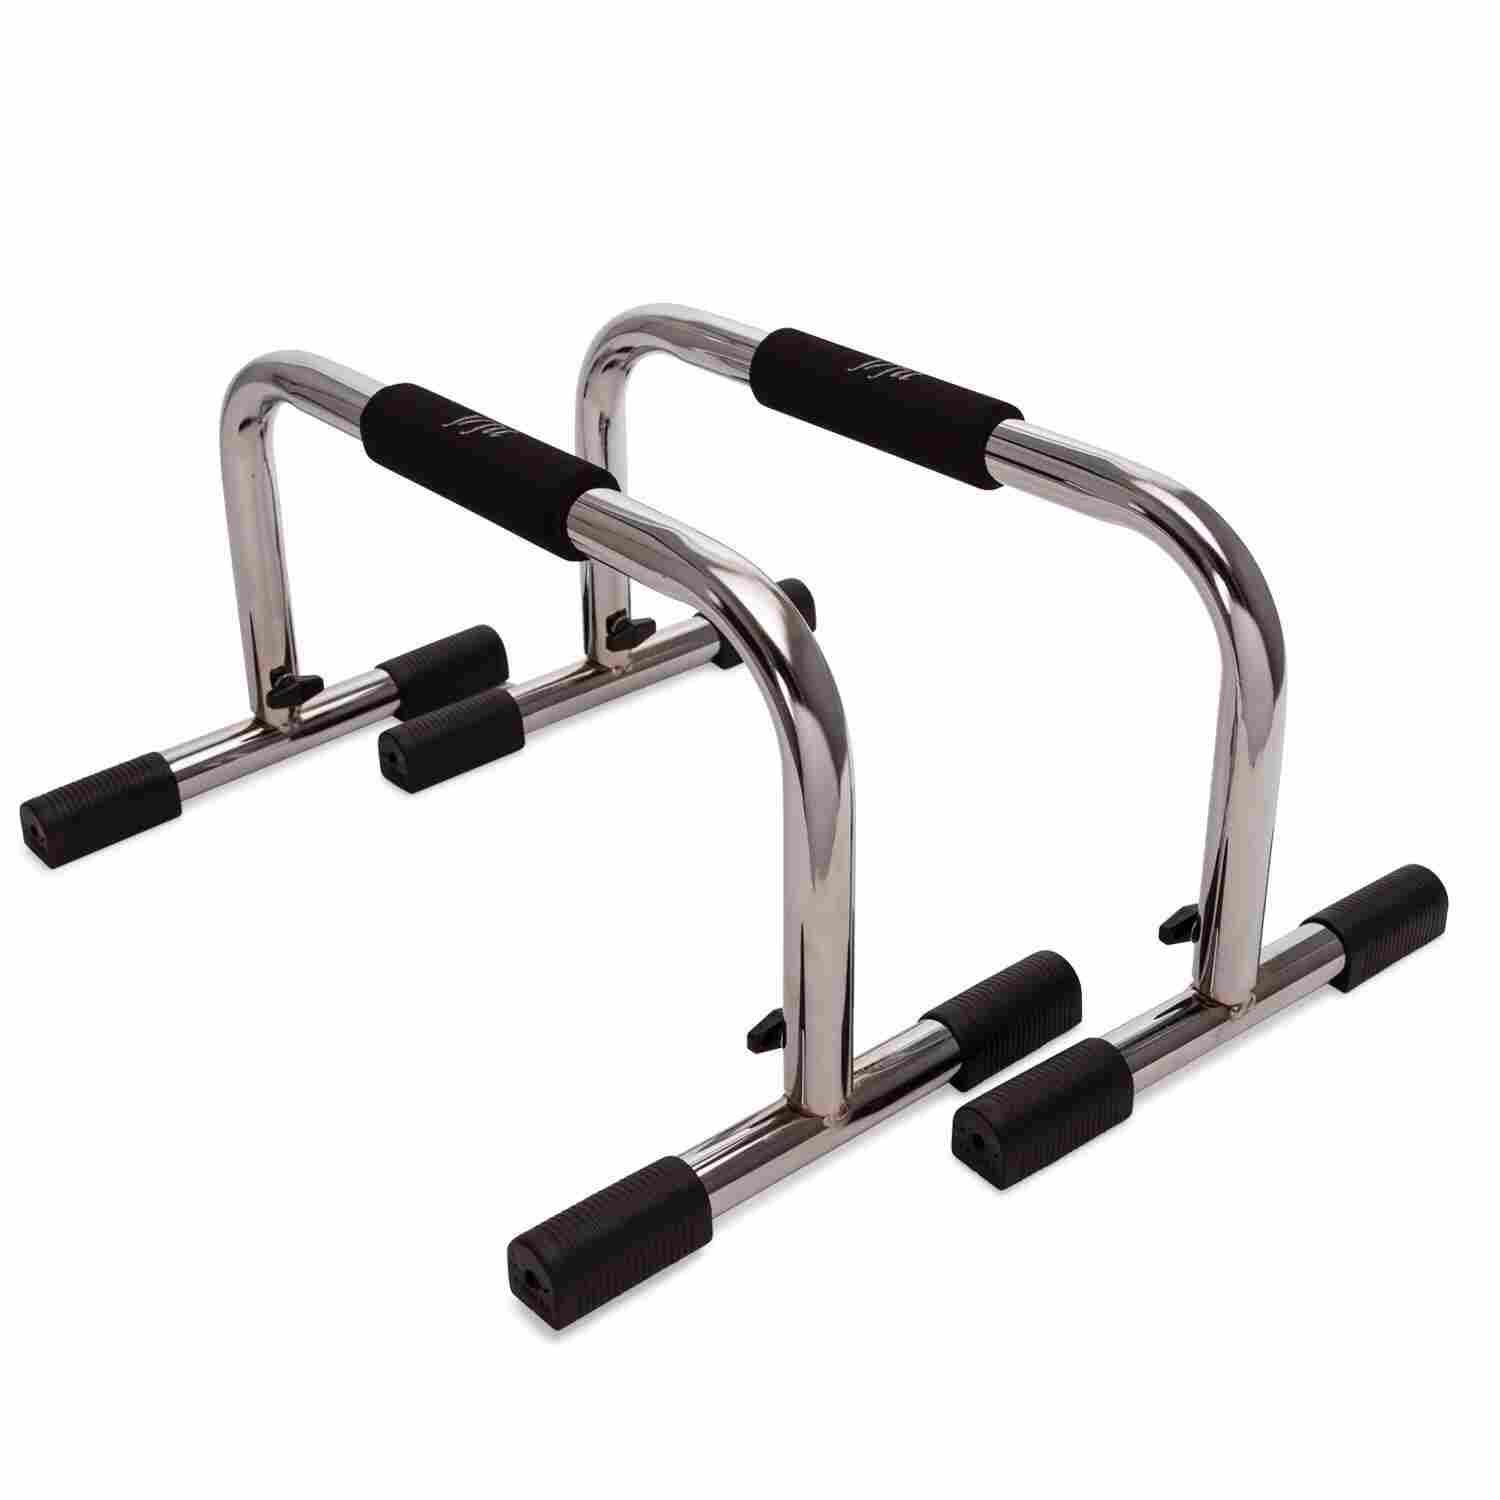 4. JFIT Pro Push Up Bar